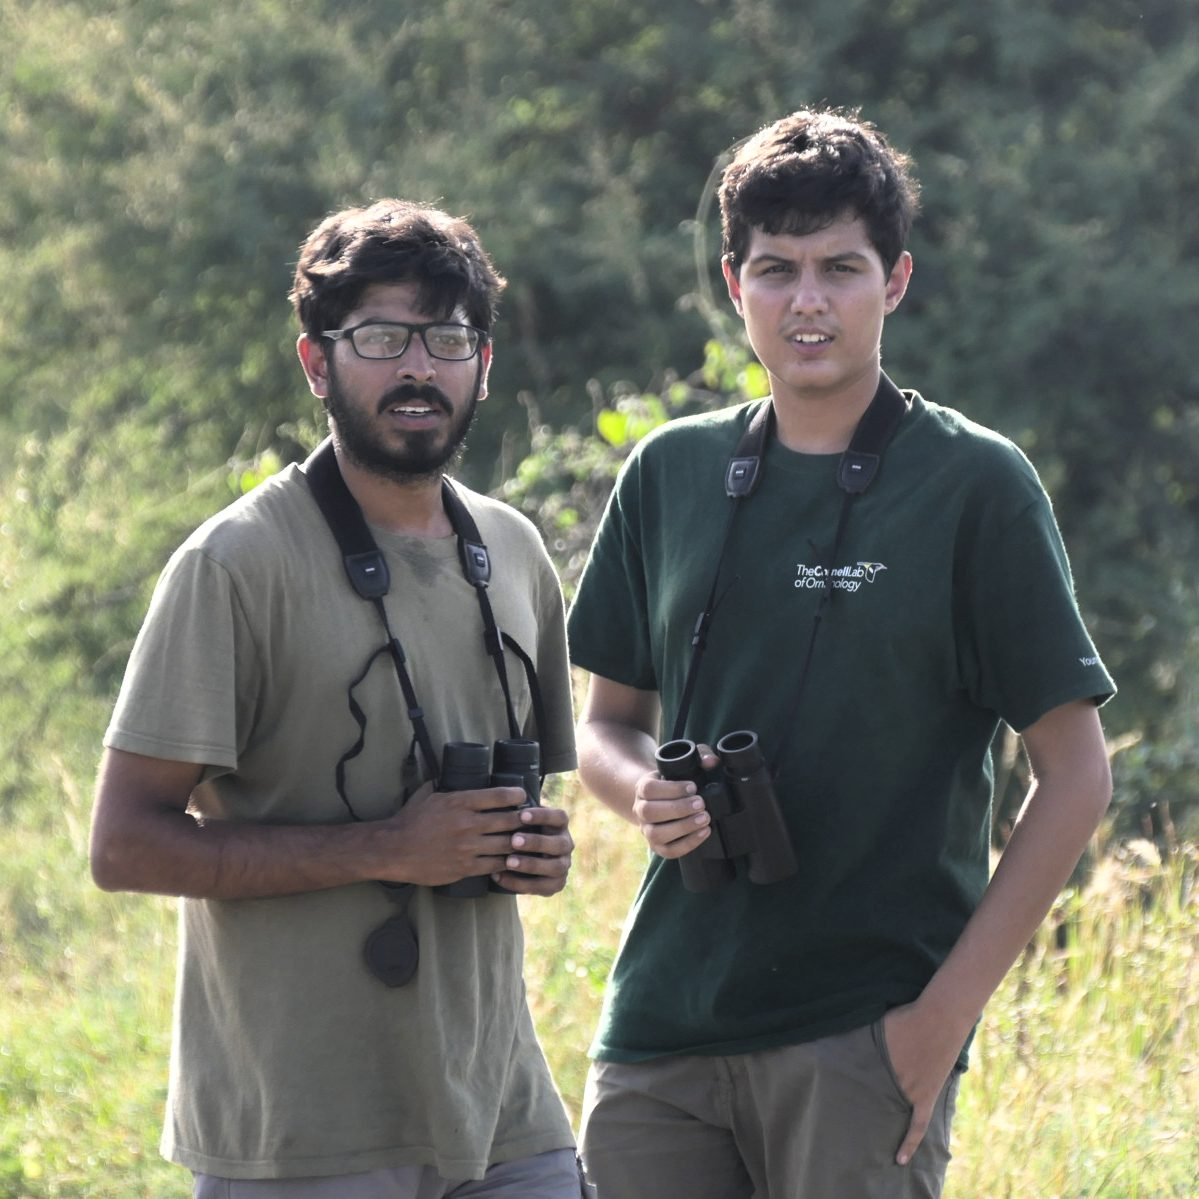 Young birders in India: 24-year-old Ramit Singal and 14-year-old Taksh Sangwan. Noah Strycker